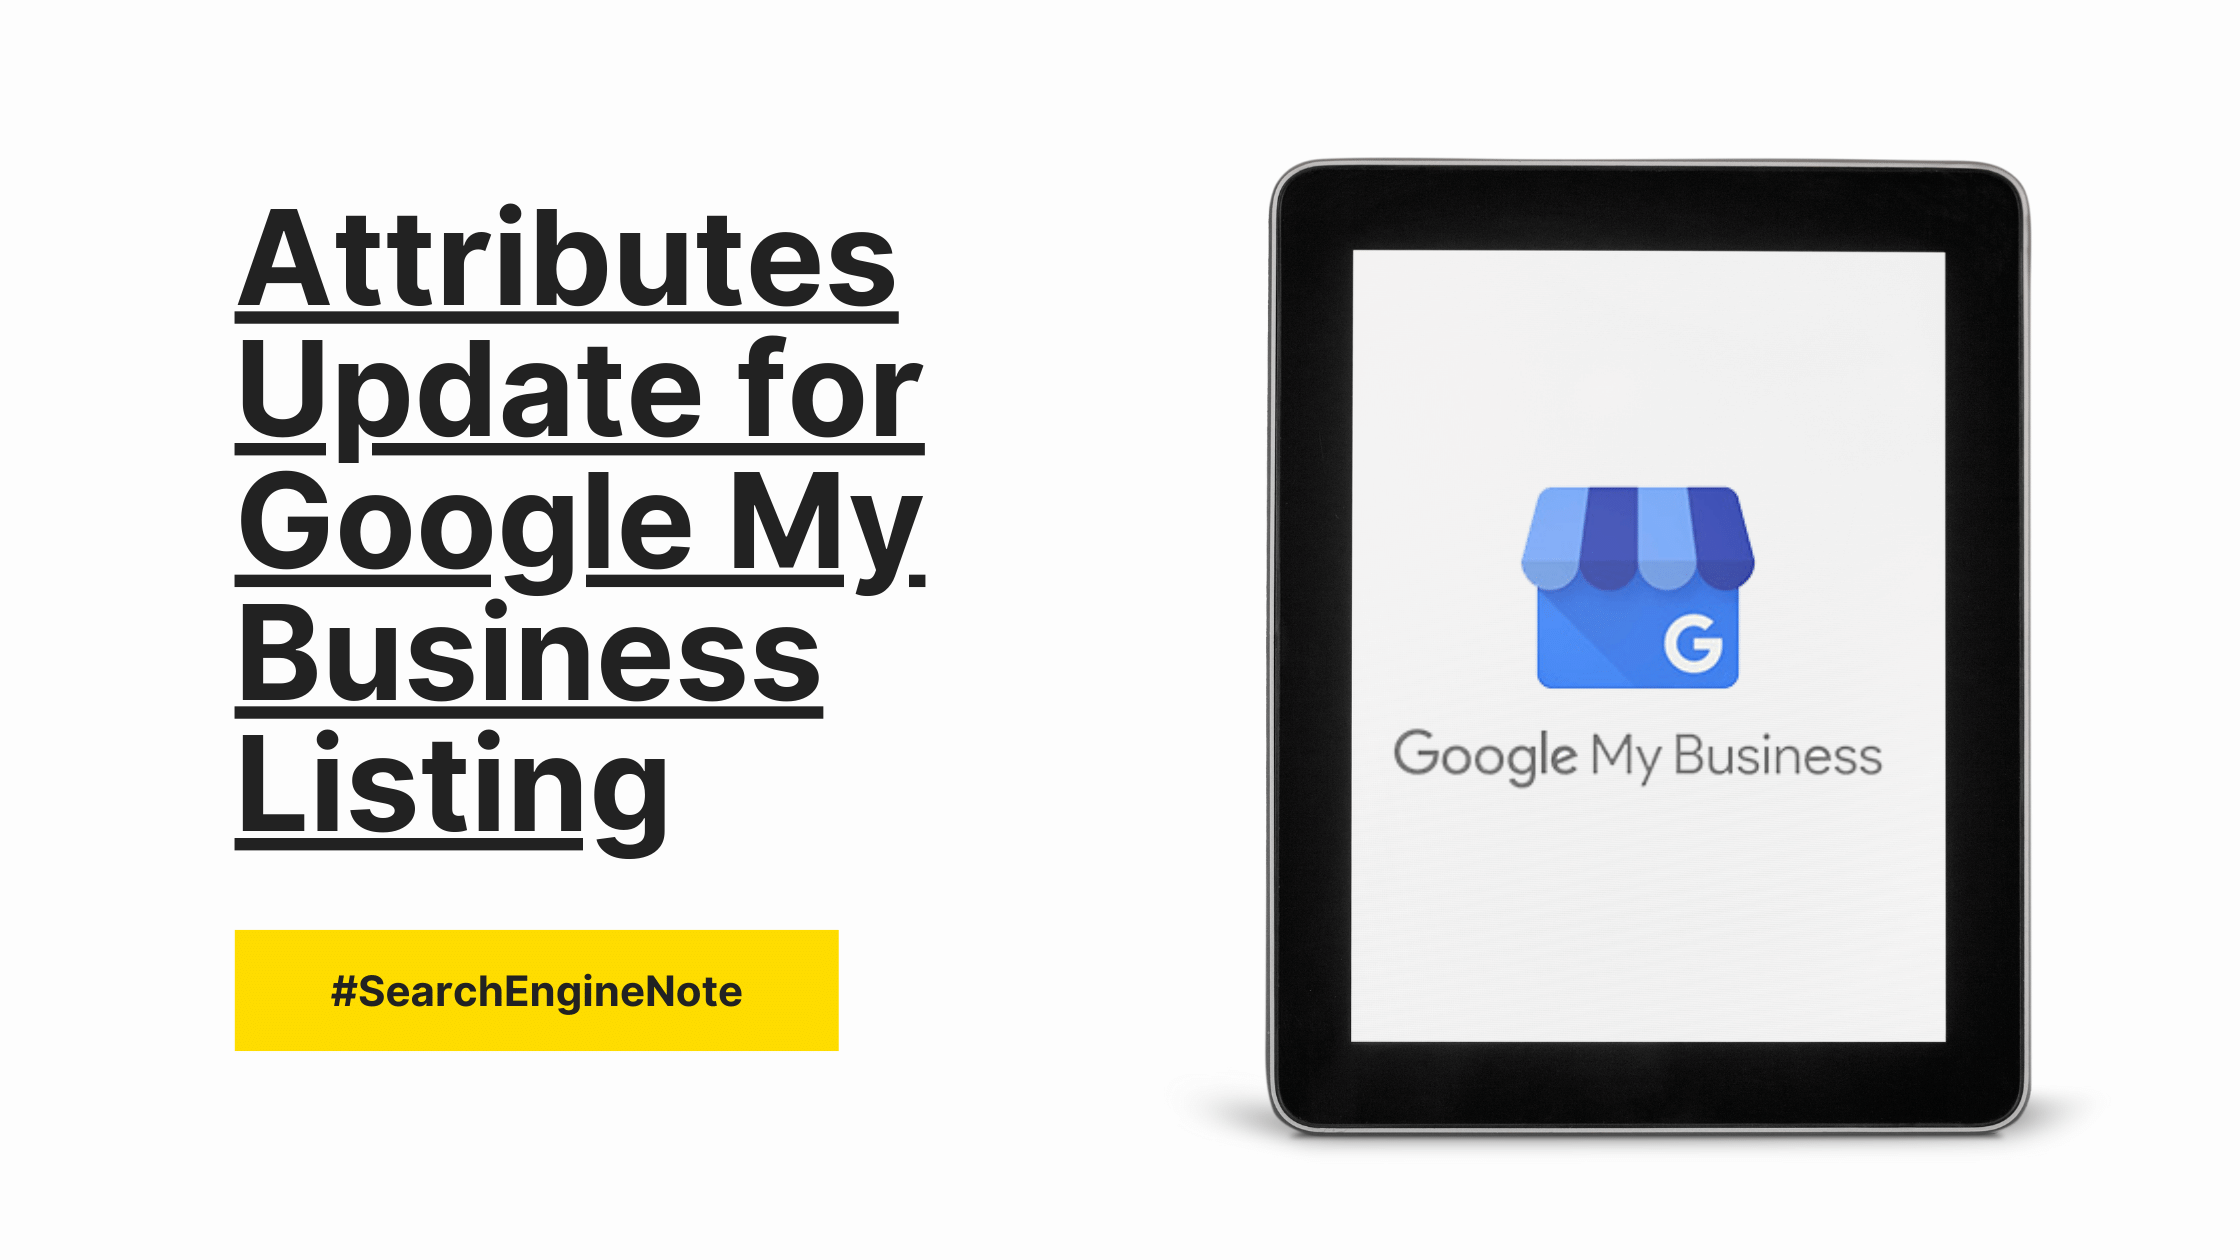 New Set of Attributes for Google My Business Listing